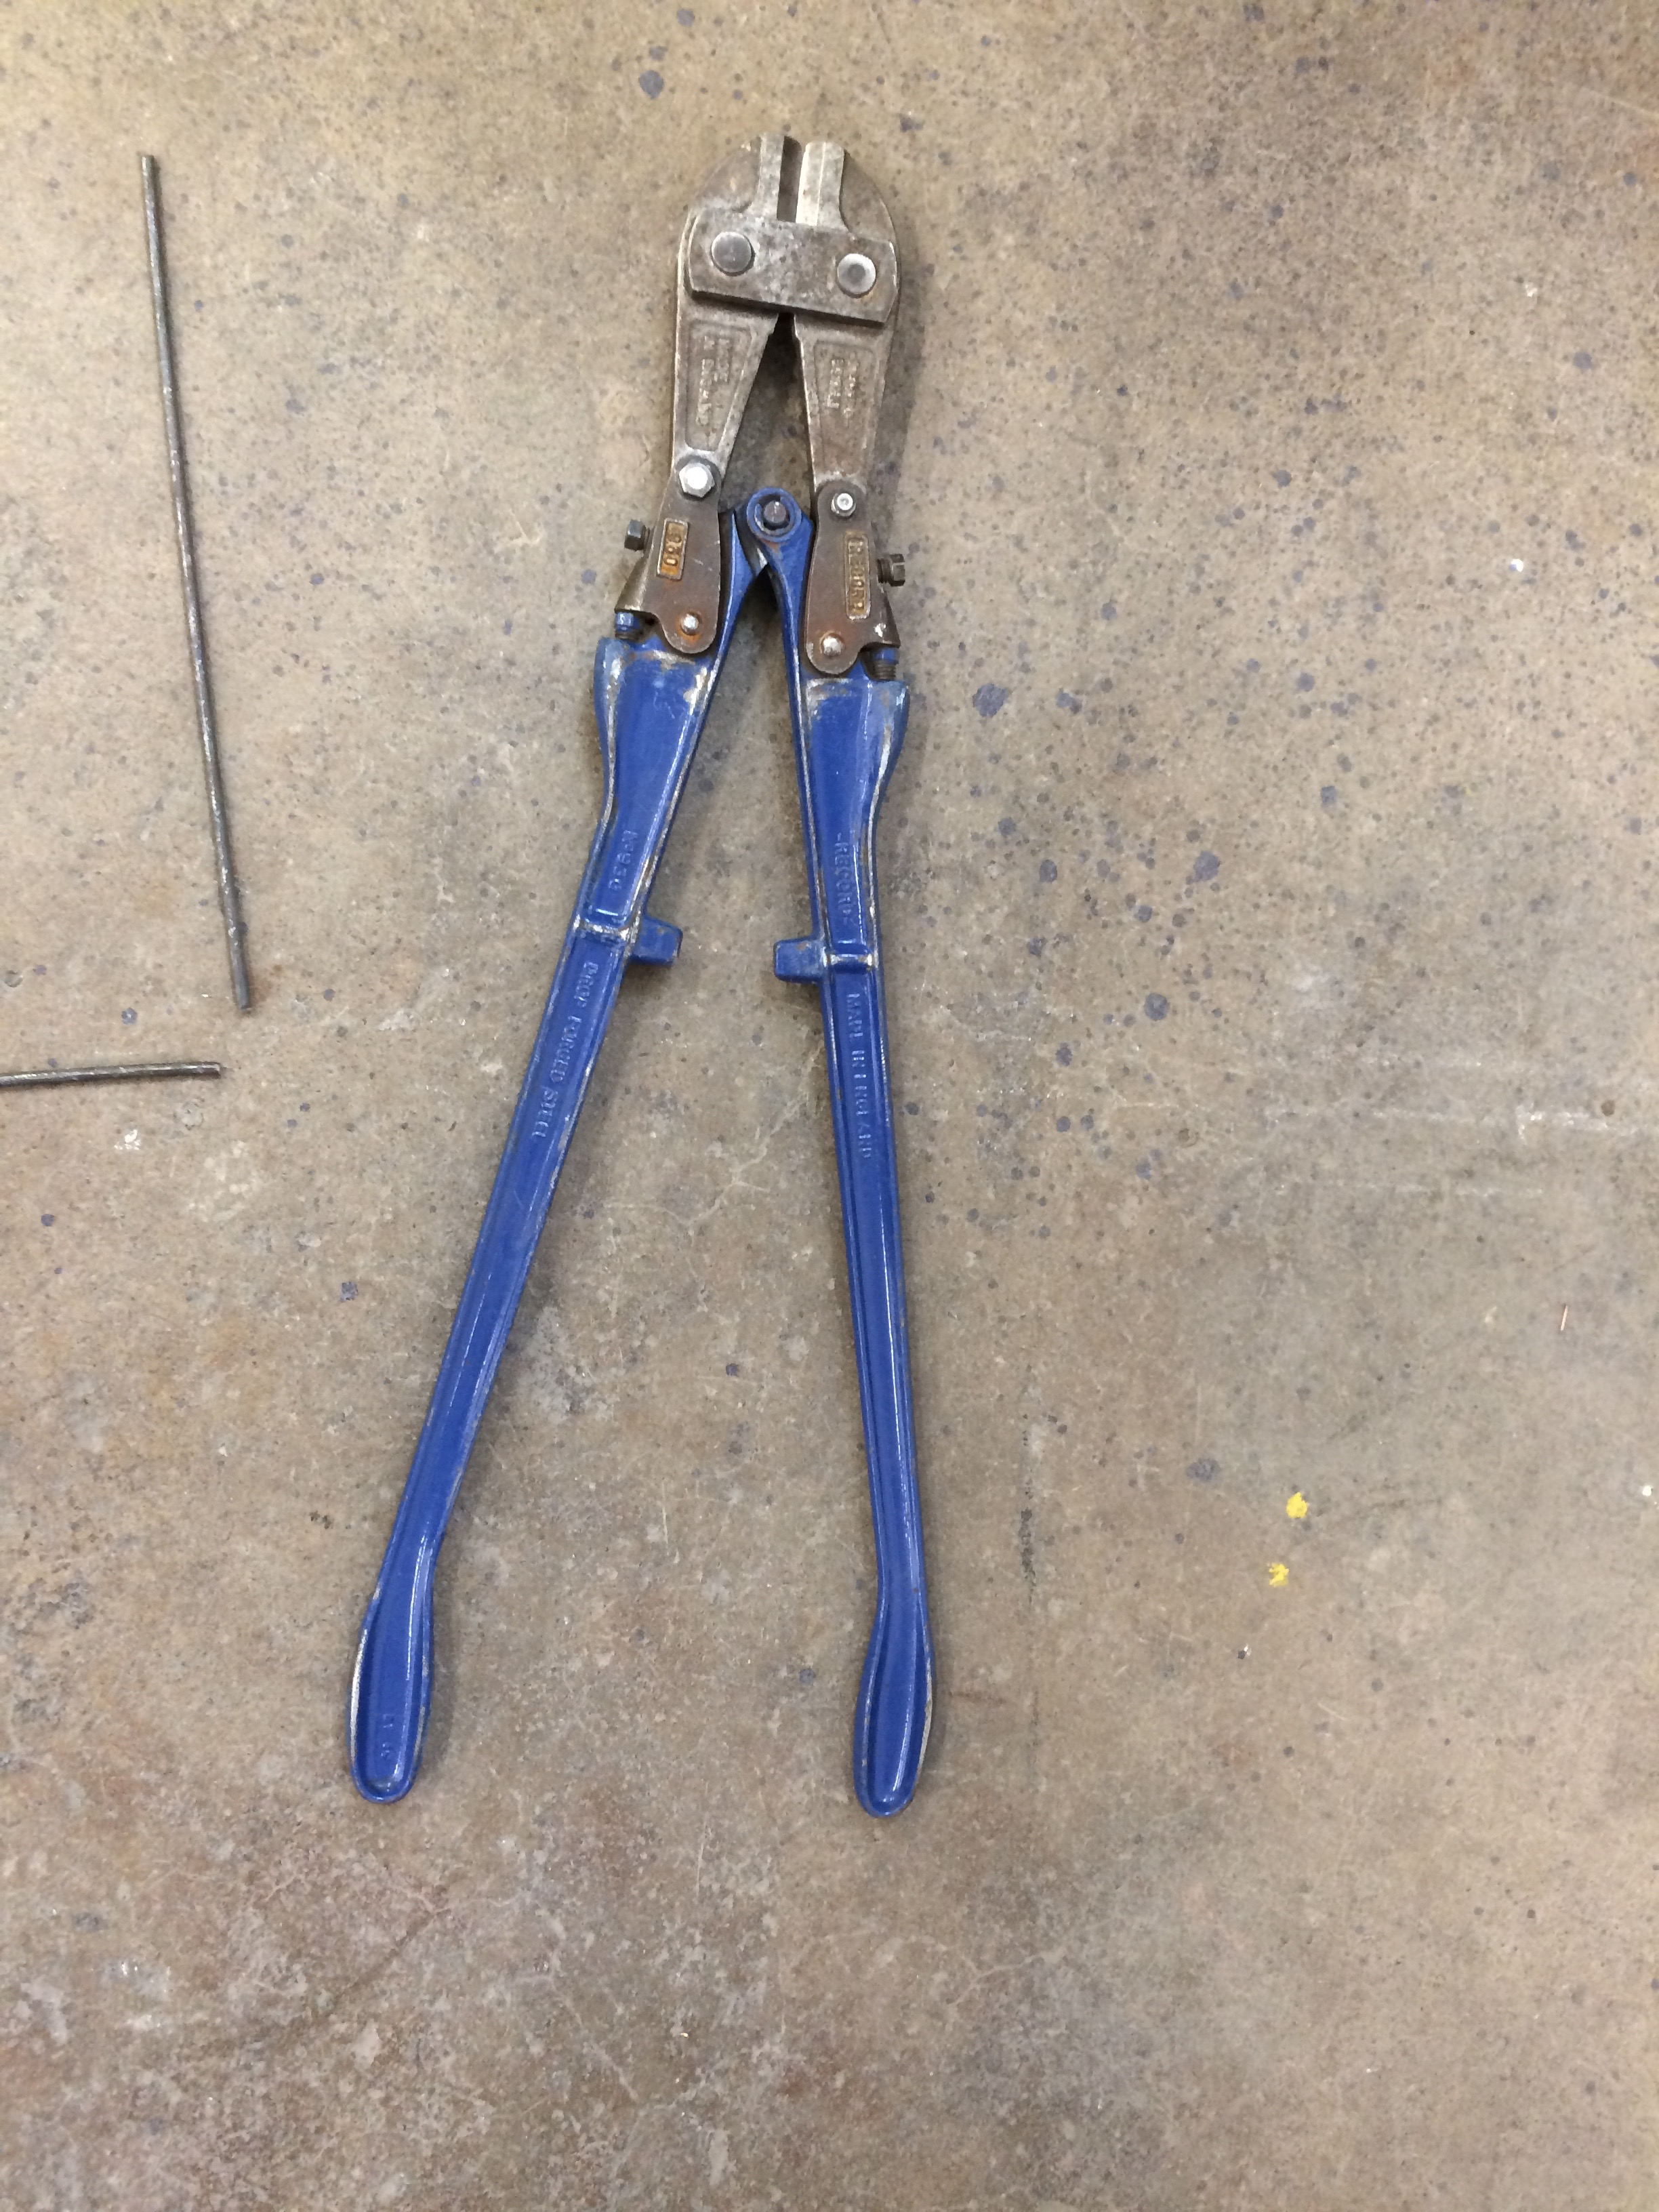 new tool for chopping metal